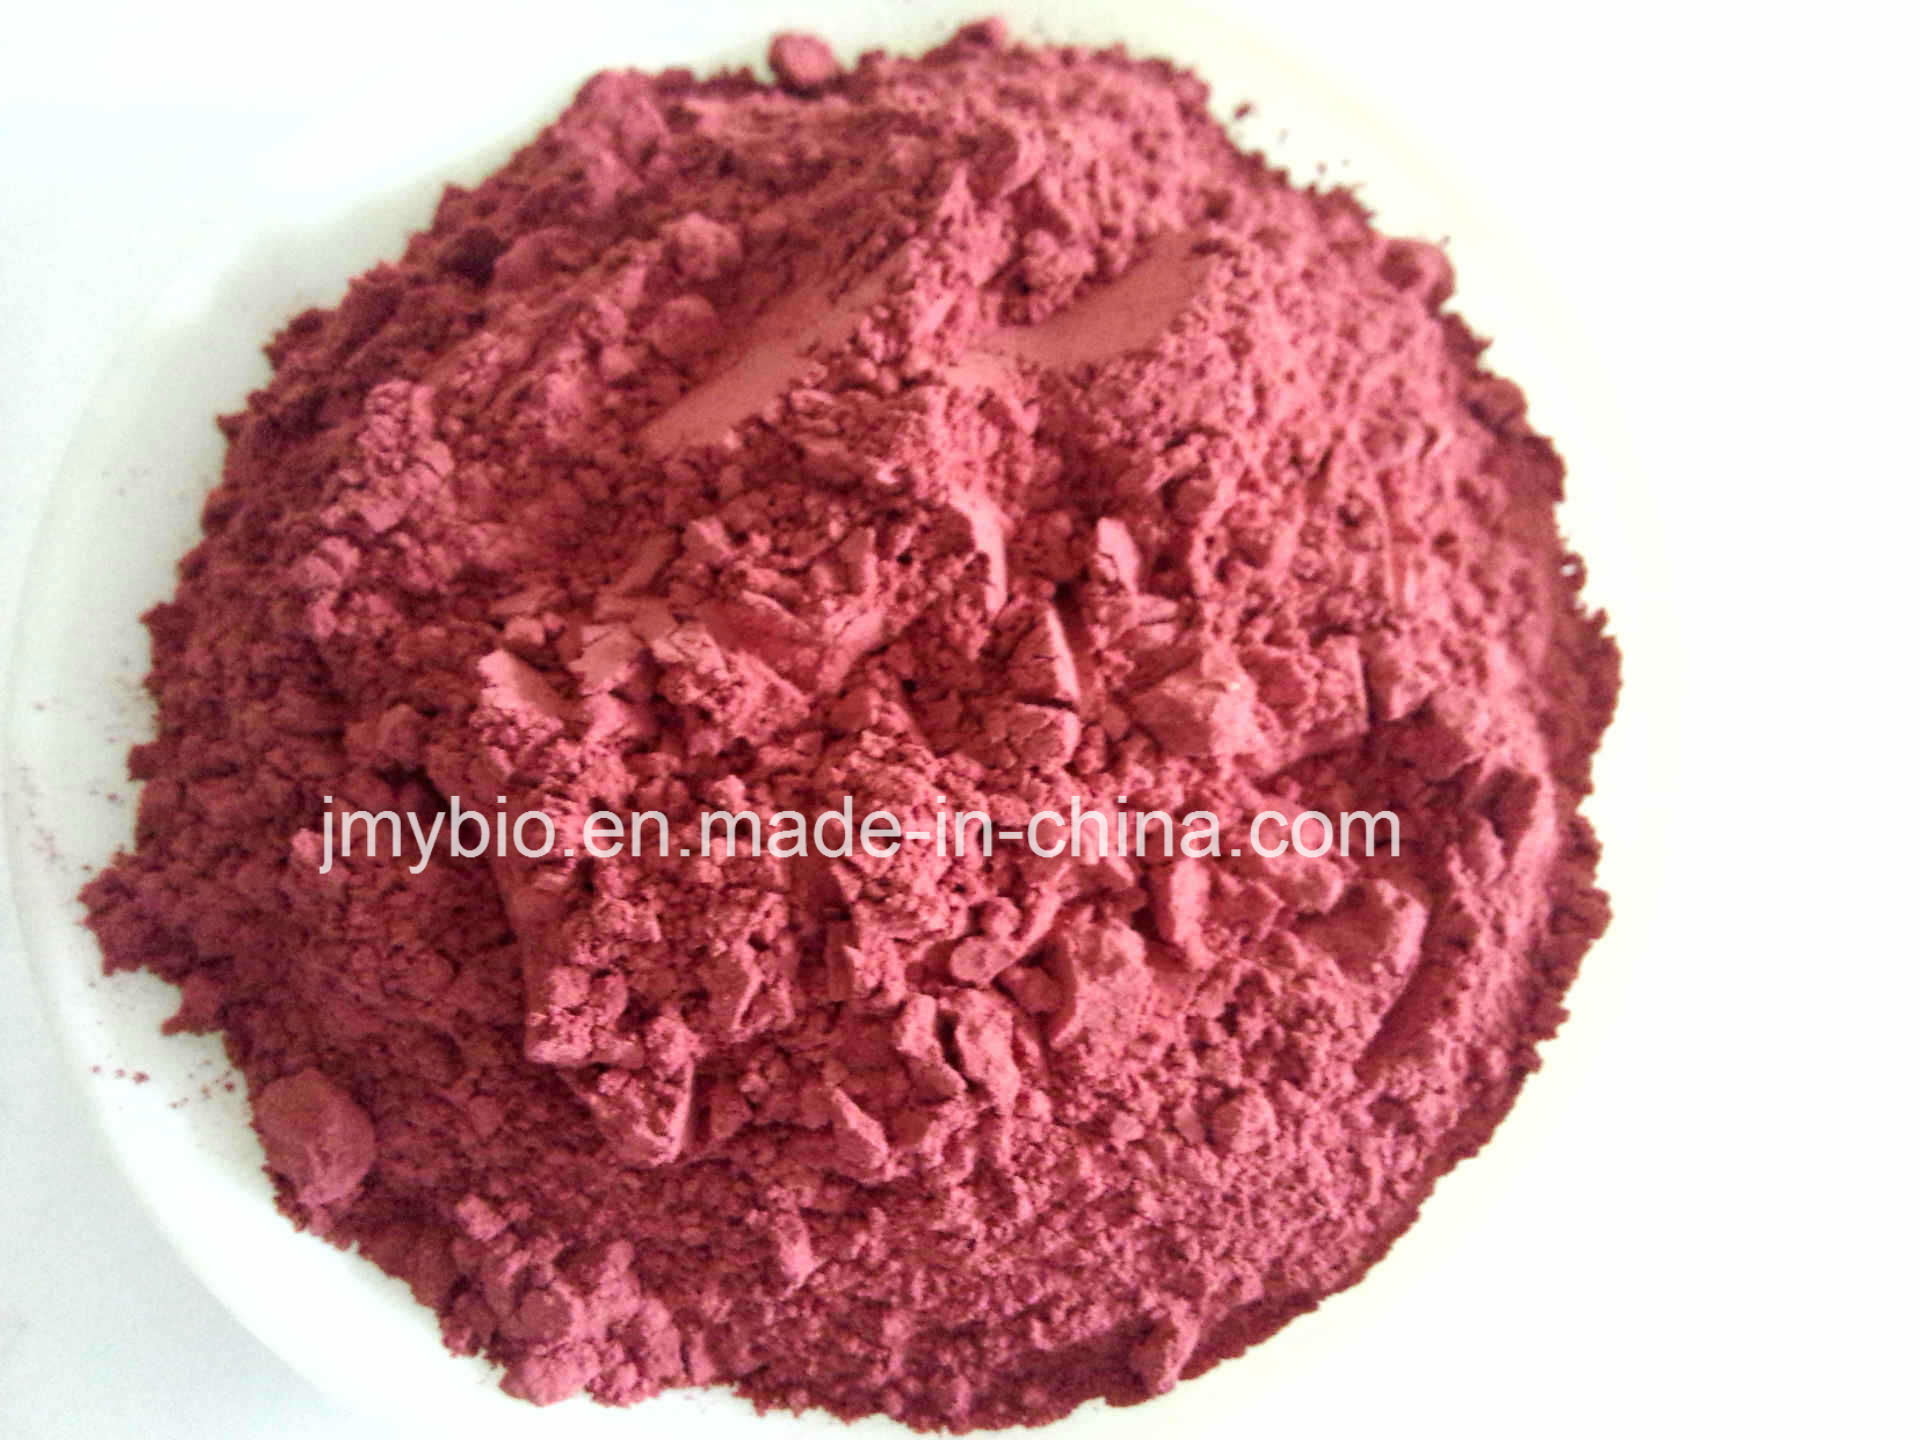 Manufacturer Supply Organic Red Yeast Rice Monacolin 0.4%